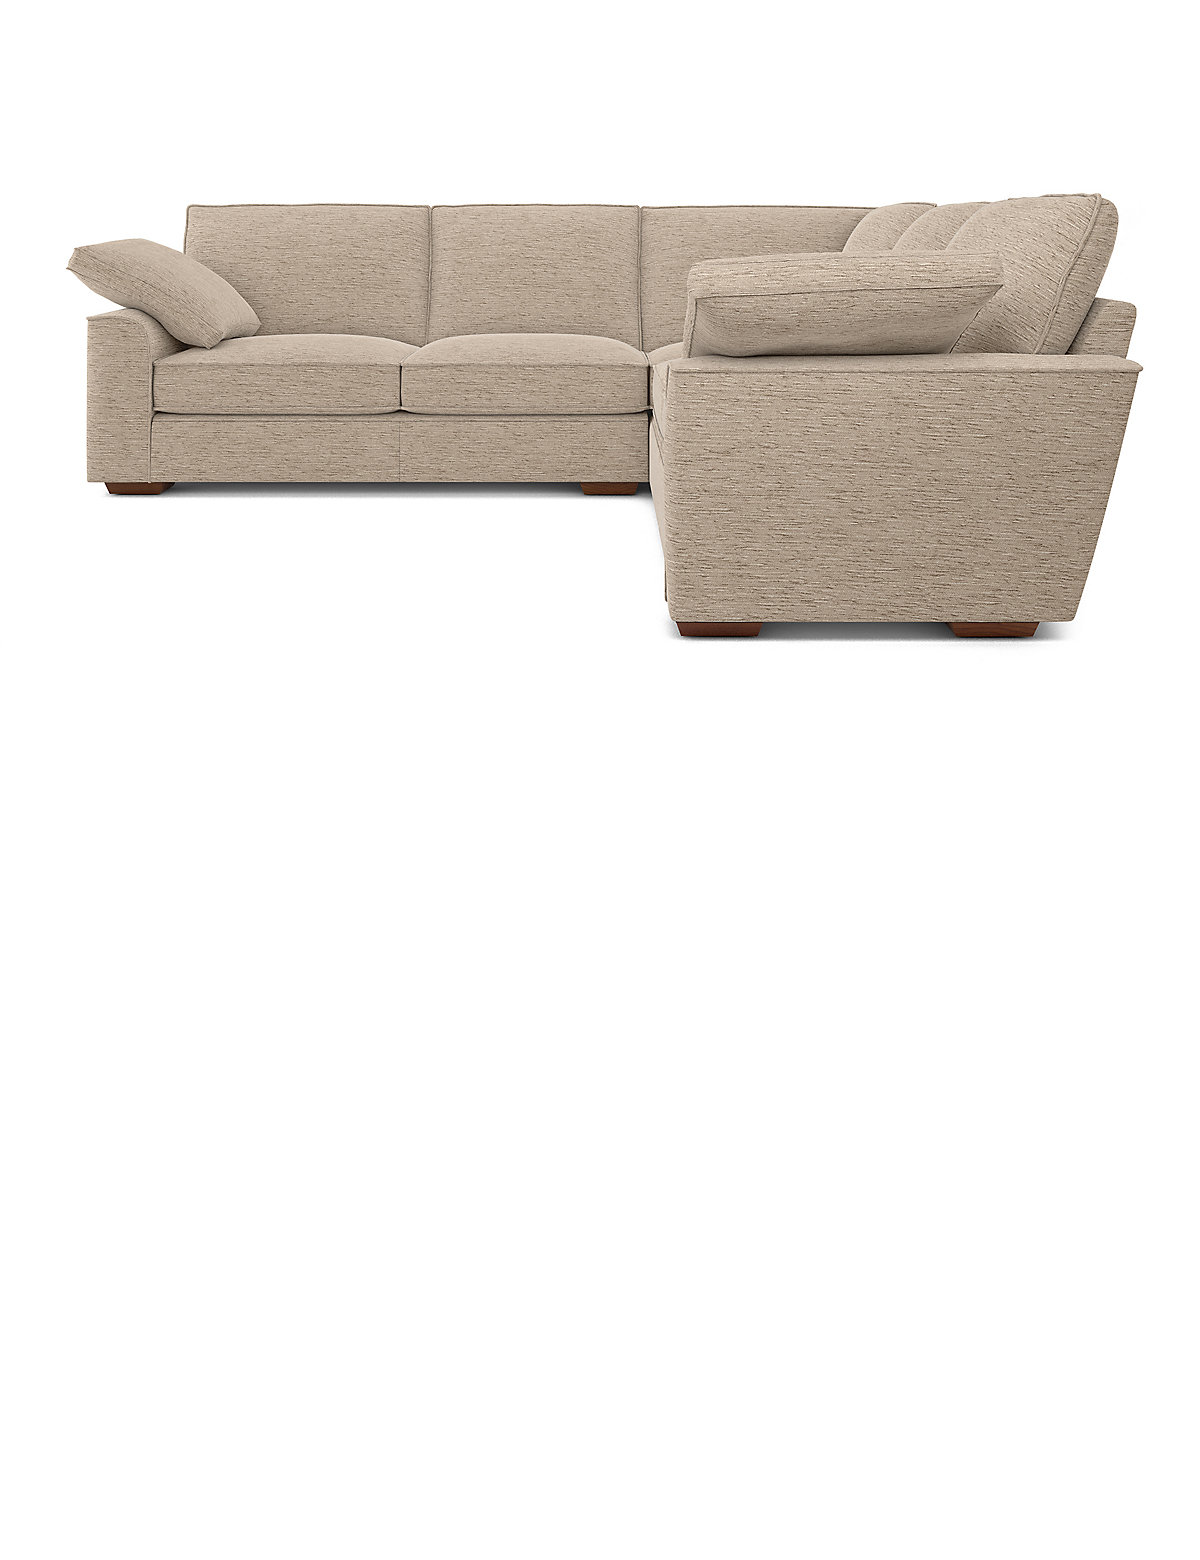 Pleasing Best L Shaped Sofas 2019 The Sun Uk Pdpeps Interior Chair Design Pdpepsorg